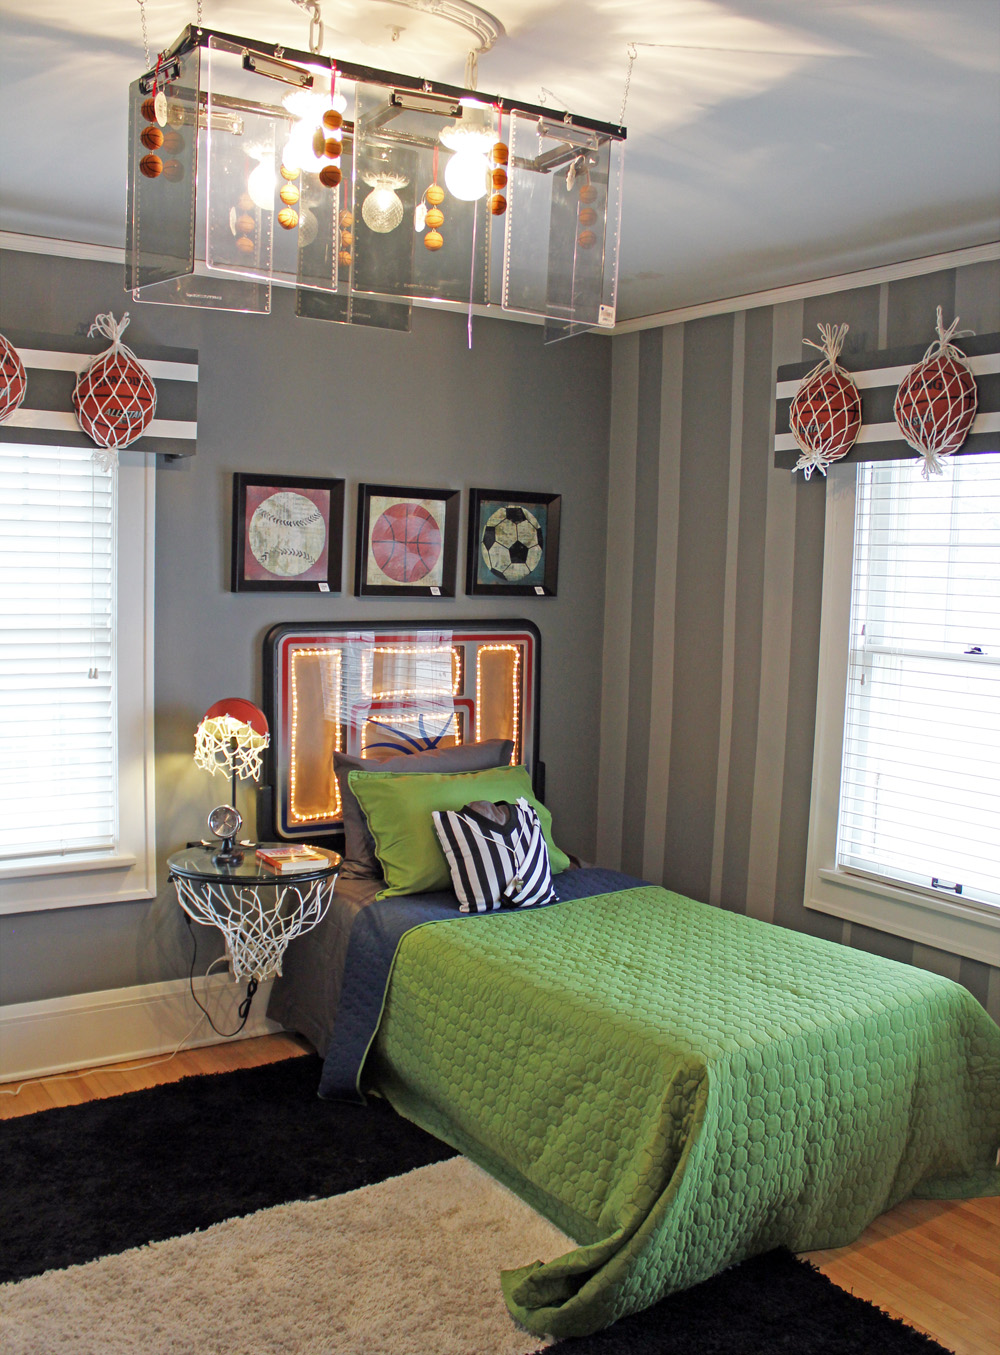 The bachmans 2012 holiday ideas house the bedrooms for Basketball bedroom designs